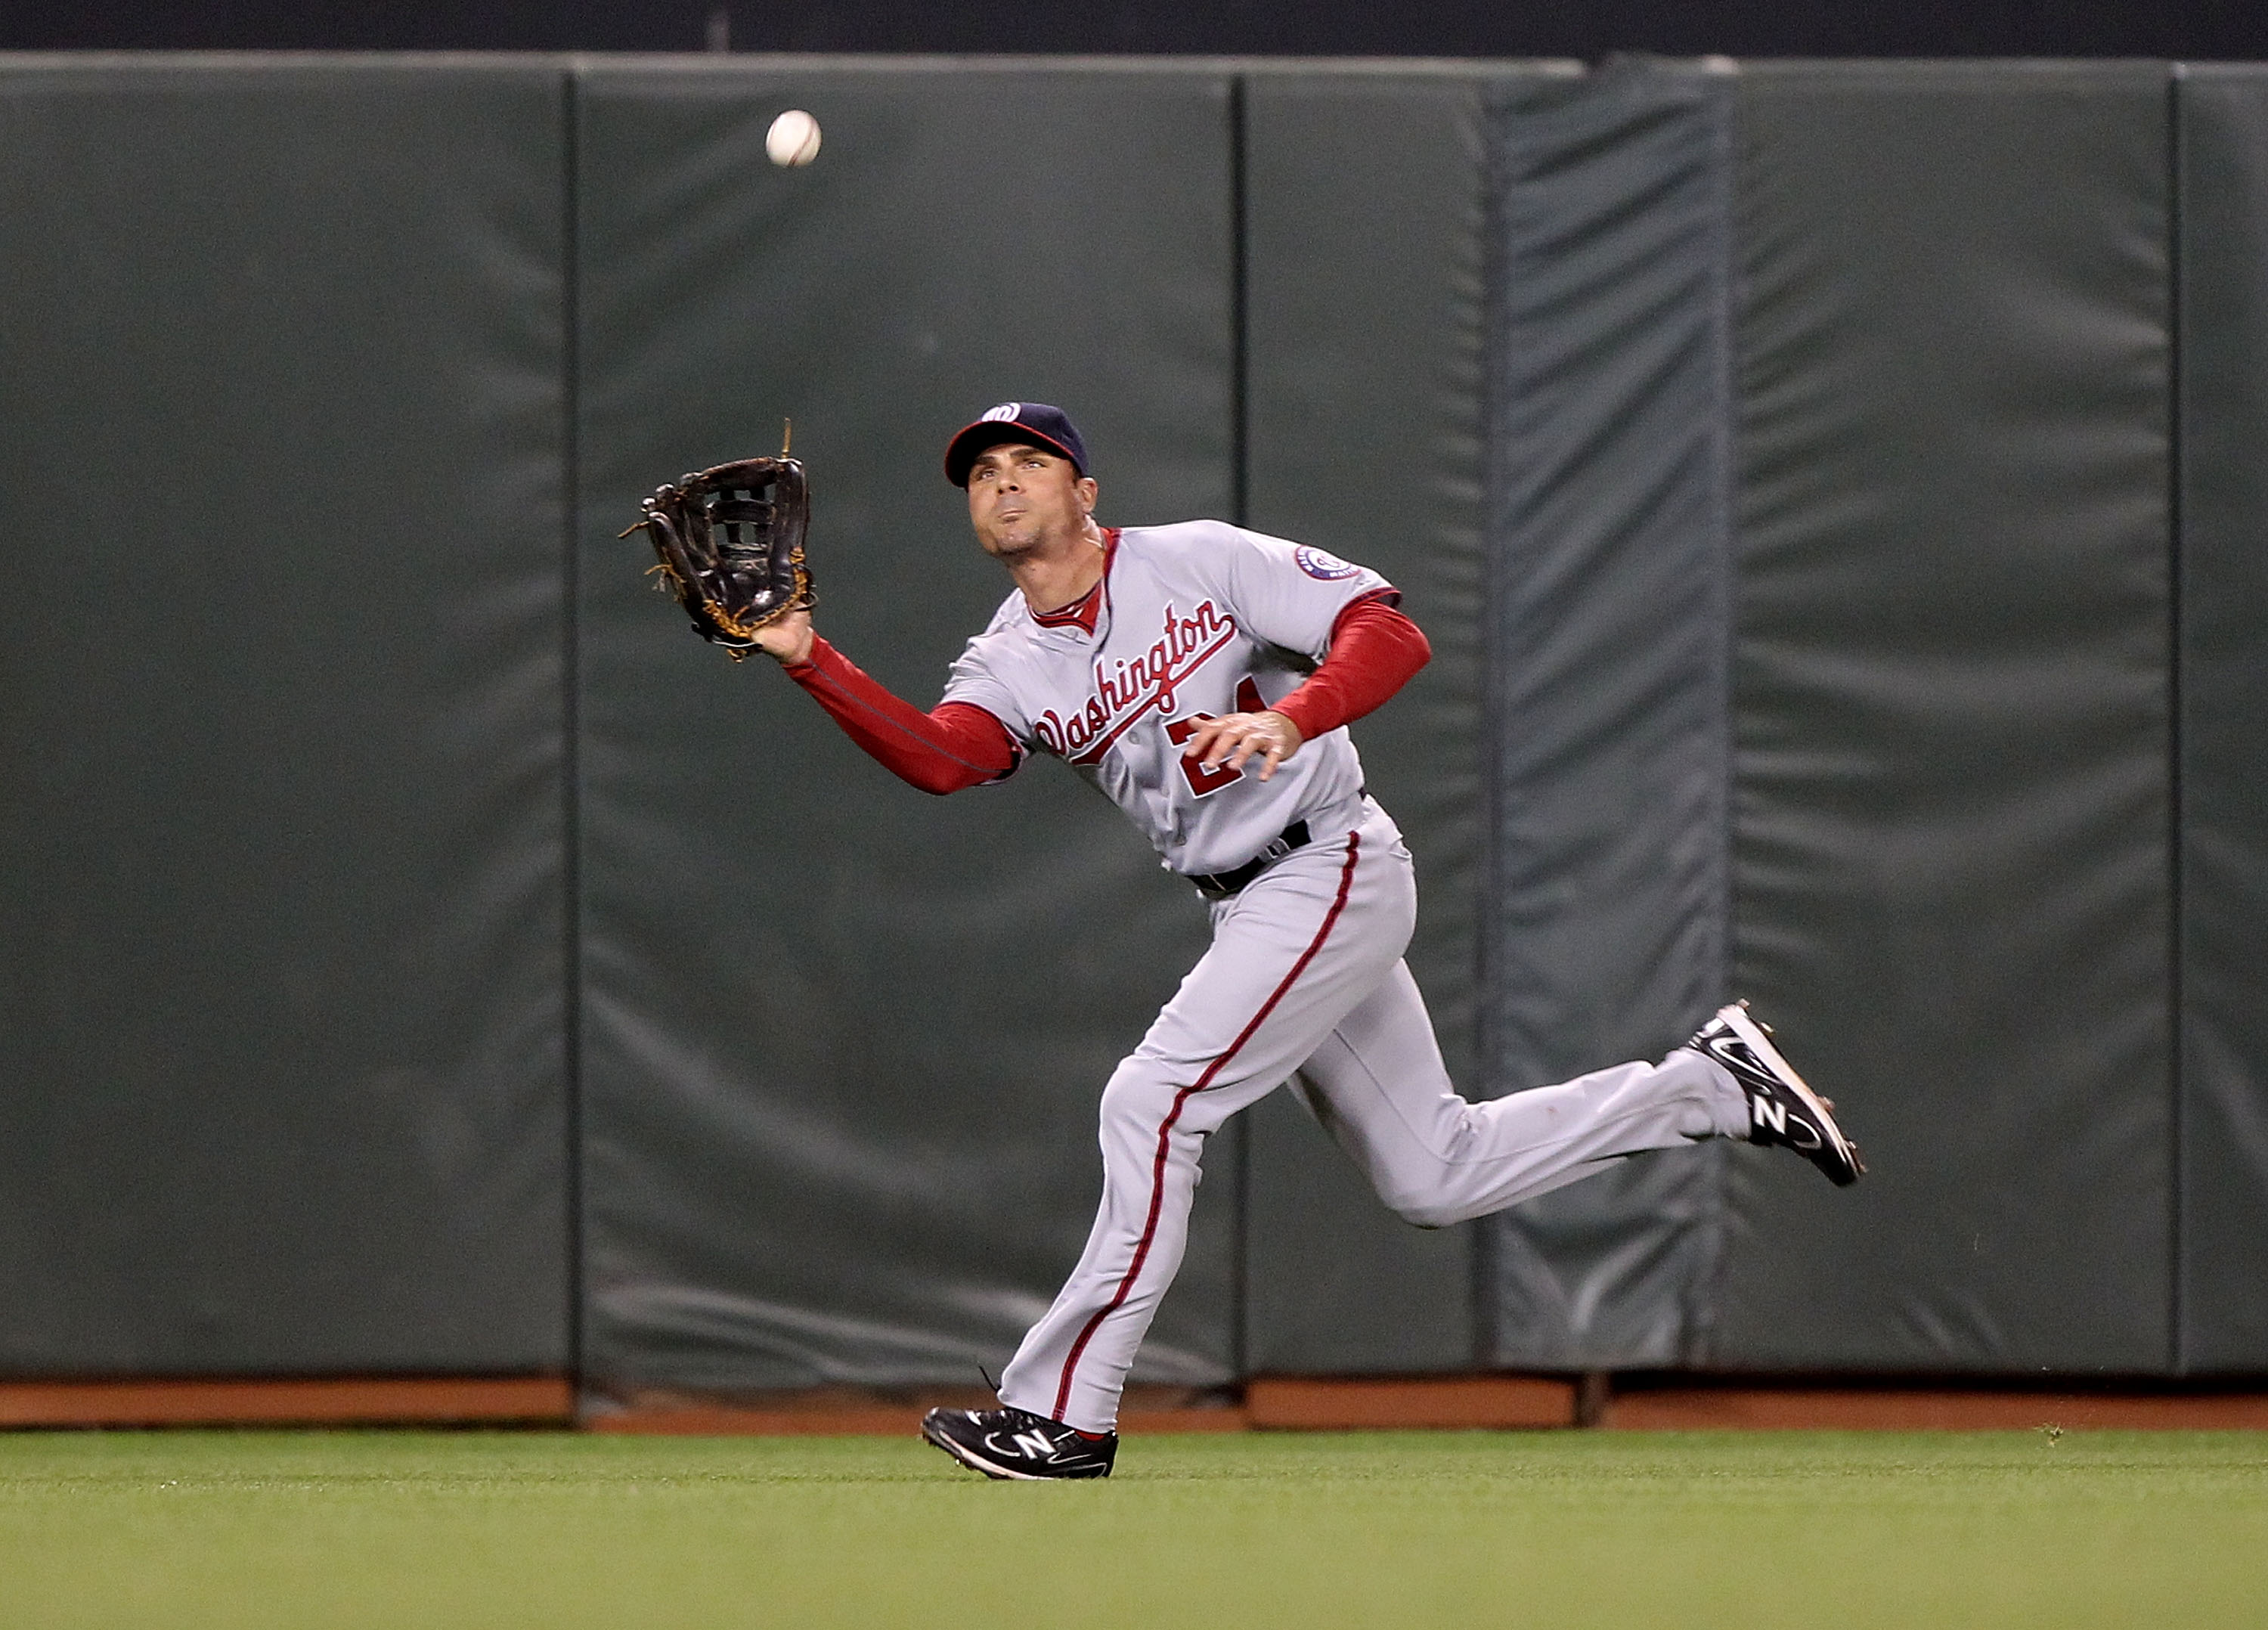 SAN FRANCISCO, CA - JUNE 07:  Rick Ankiel #24 of the Washington Nationals catches a ball hit by Aaron Rowand of the San Francisco Giants during an MLB game at AT&T Park on June 7, 2011 in San Francisco, California.  (Photo by Jed Jacobsohn/Getty Images)